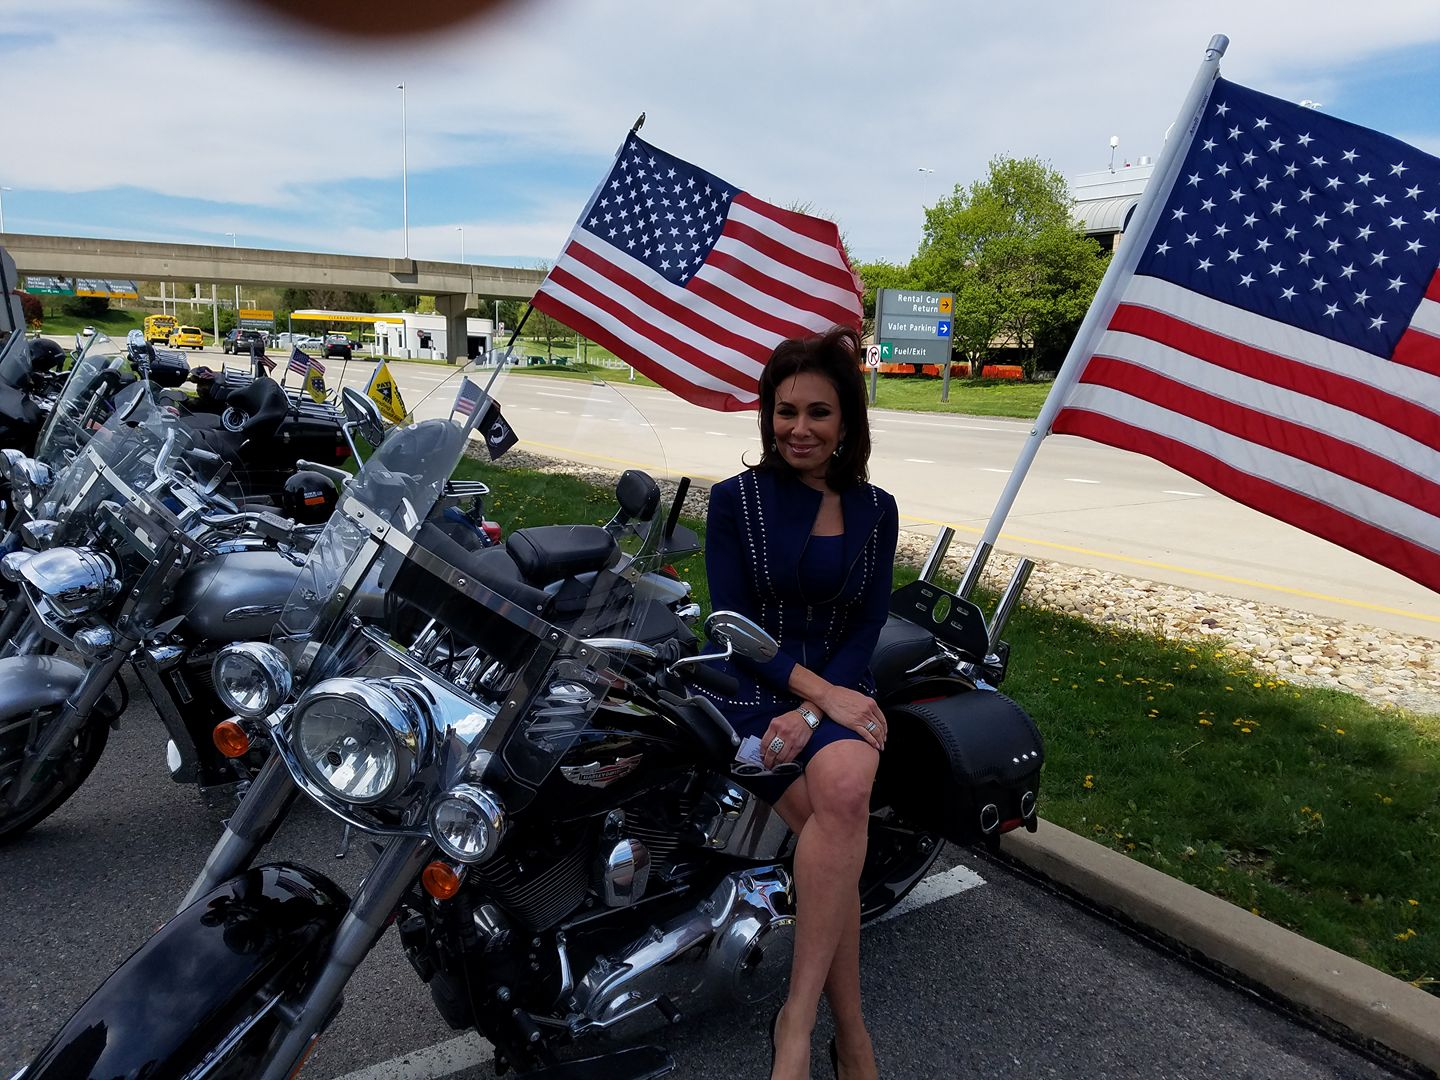 Judge Jeanine takes a pic on our members bike